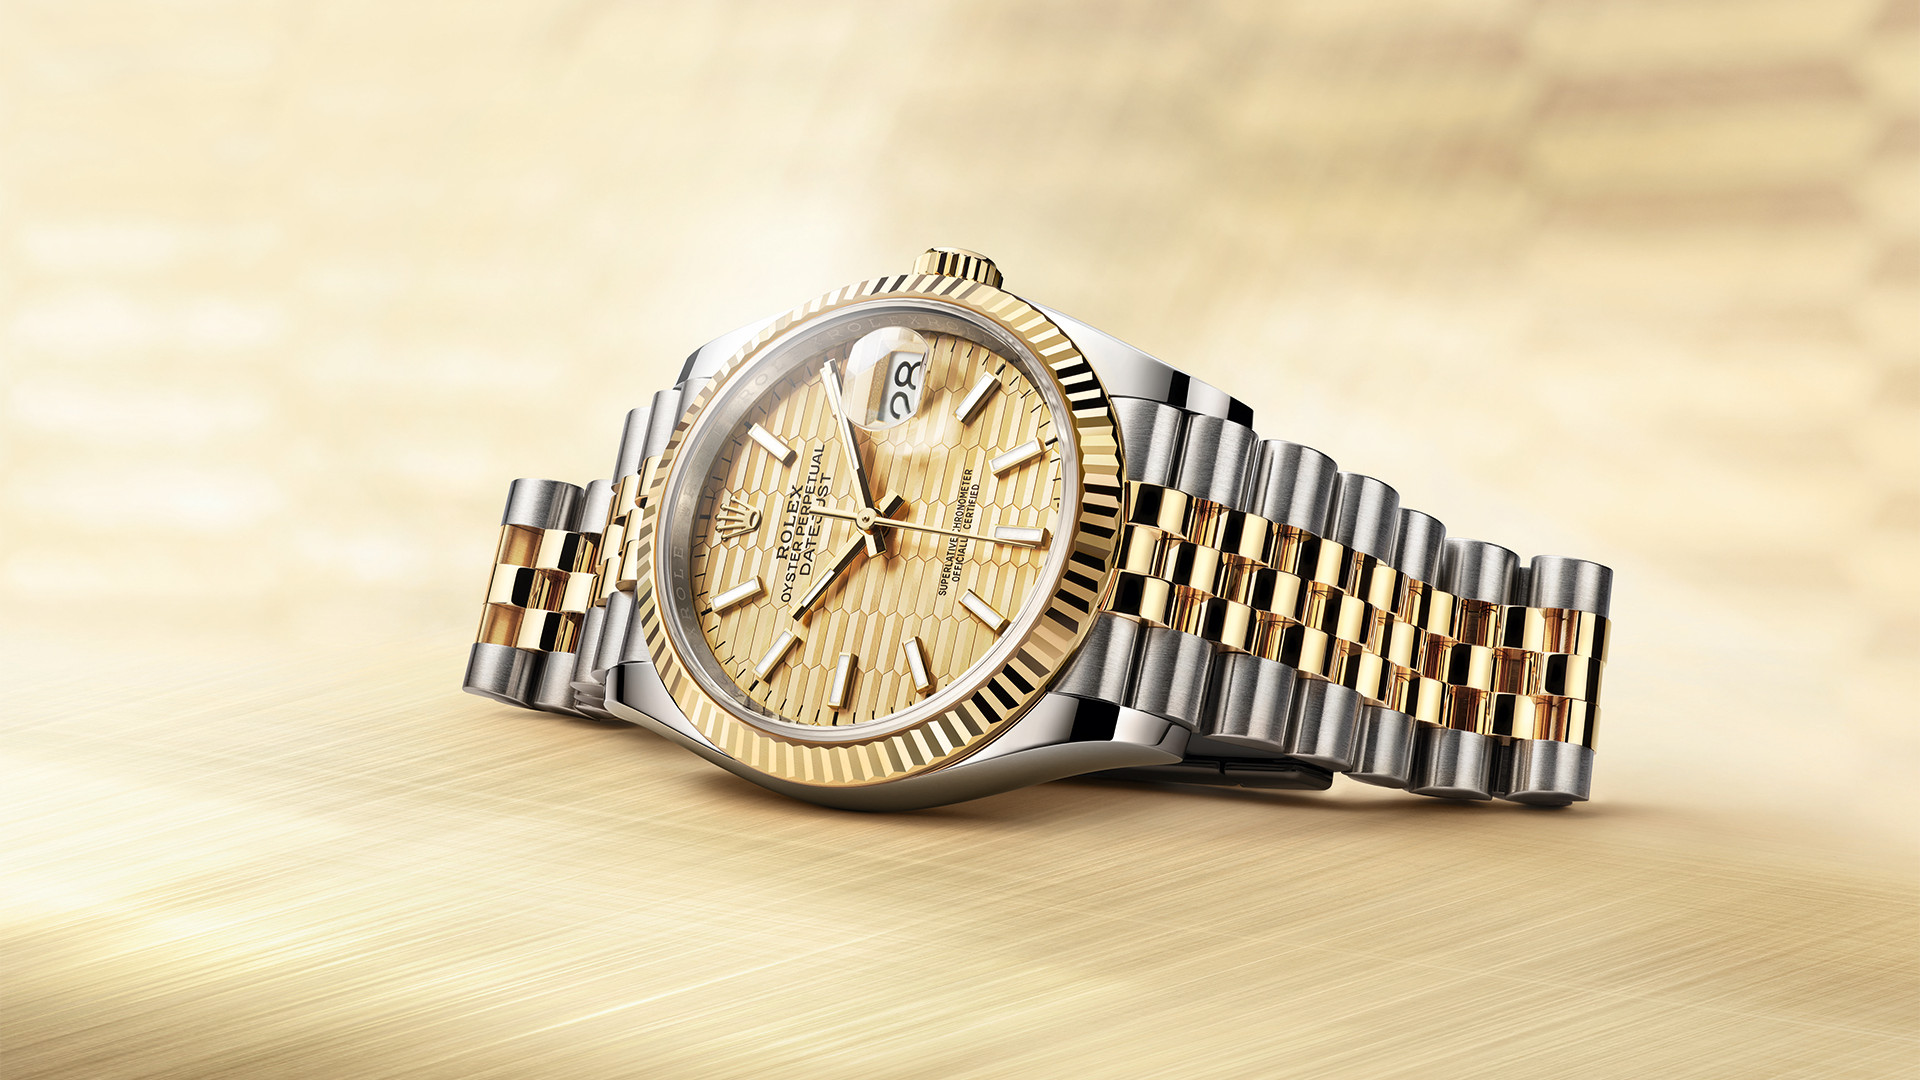 Rolex Oyster Perpetual Datejust 36mm Fluted Dial 2021 watch